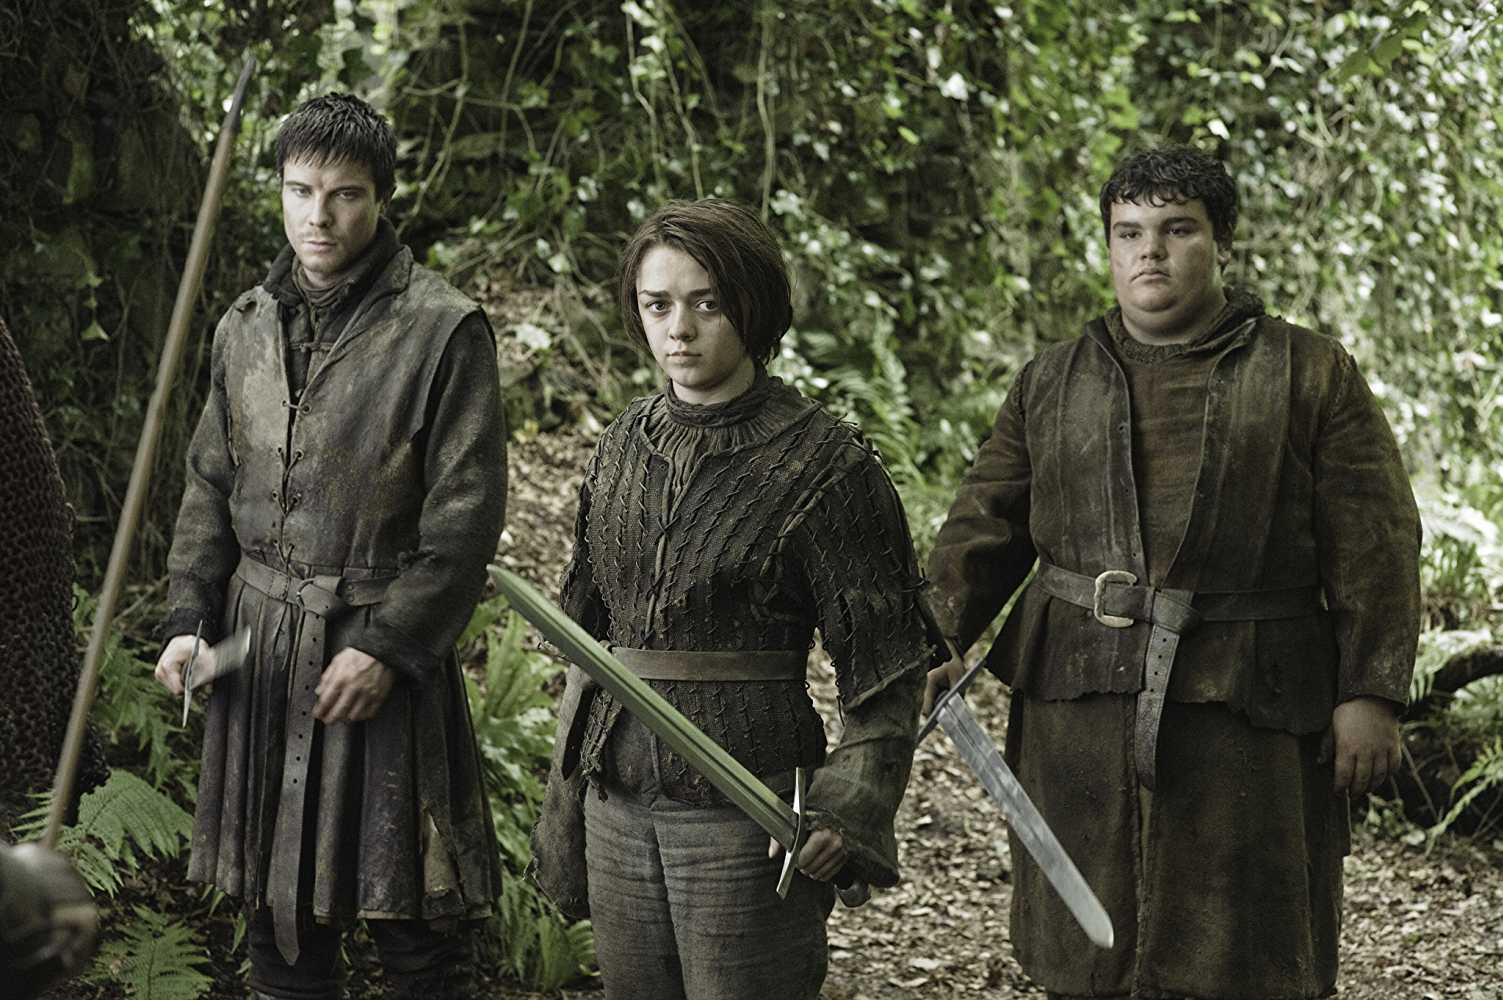 Gendry, Arya Stark and Hot Pie in 'Game of Thrones'. Source: IMDB